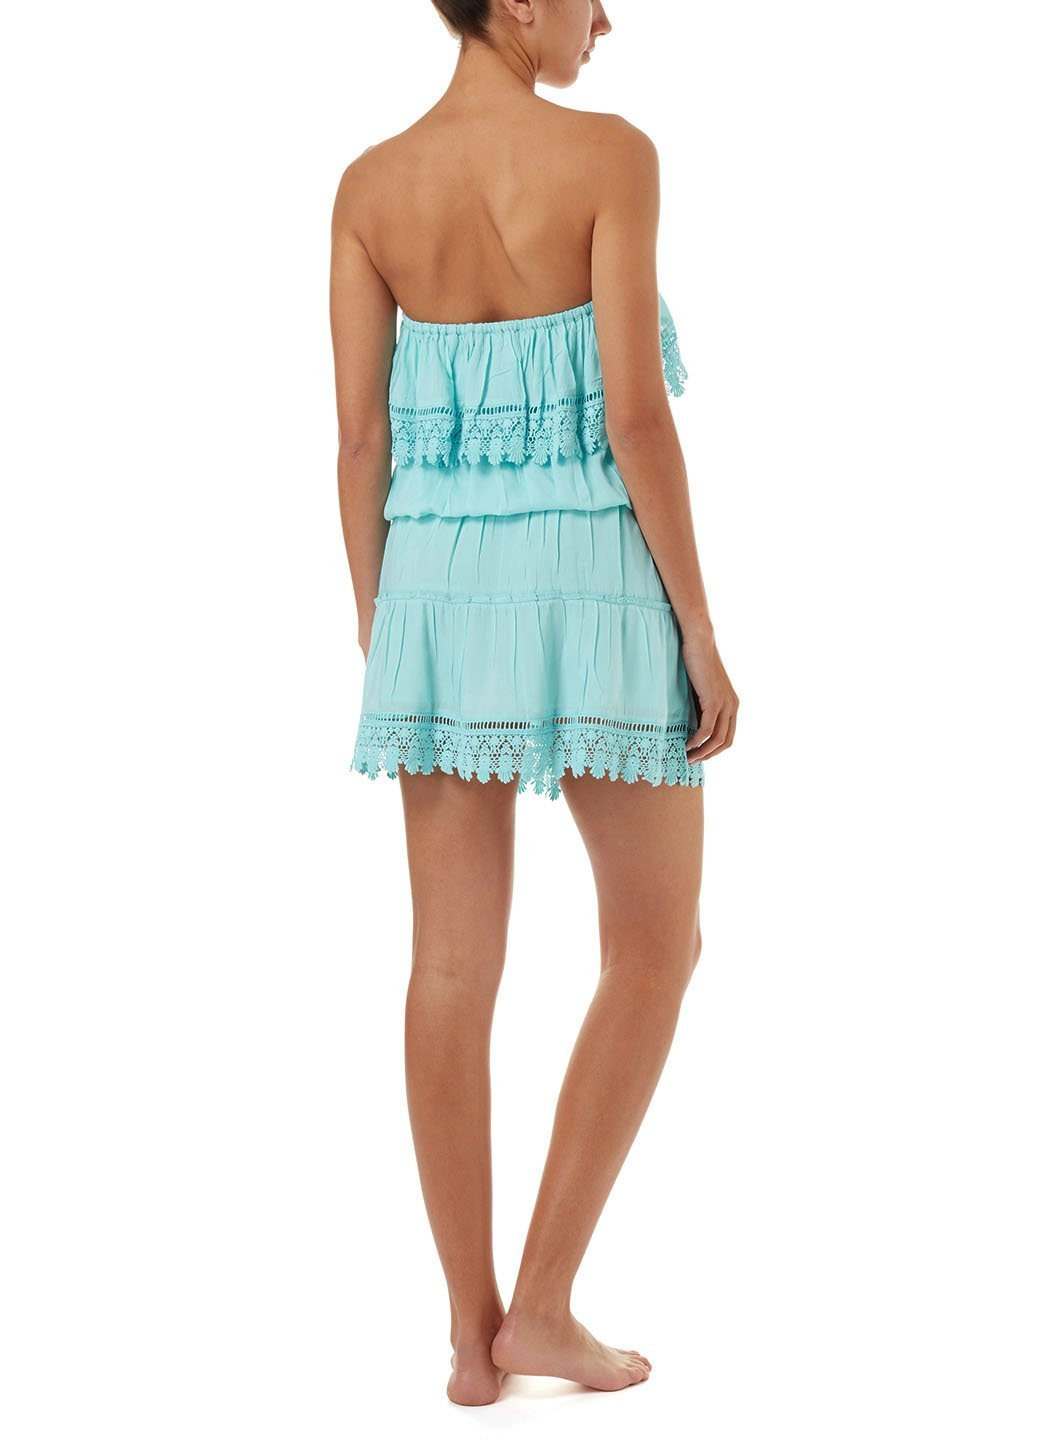 joy sky bandeau embroidered frill short dress 2019 B